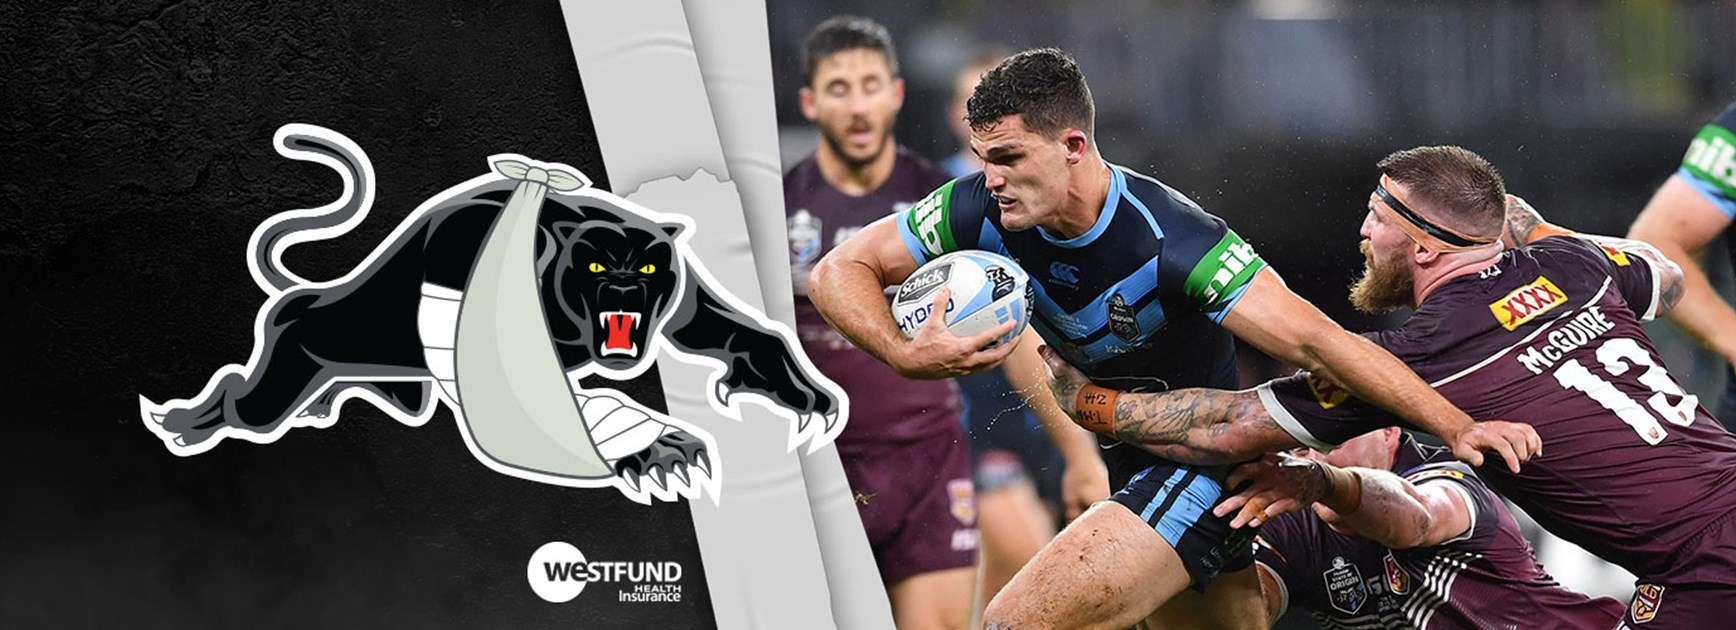 Westfund Injury Update: Nathan Cleary